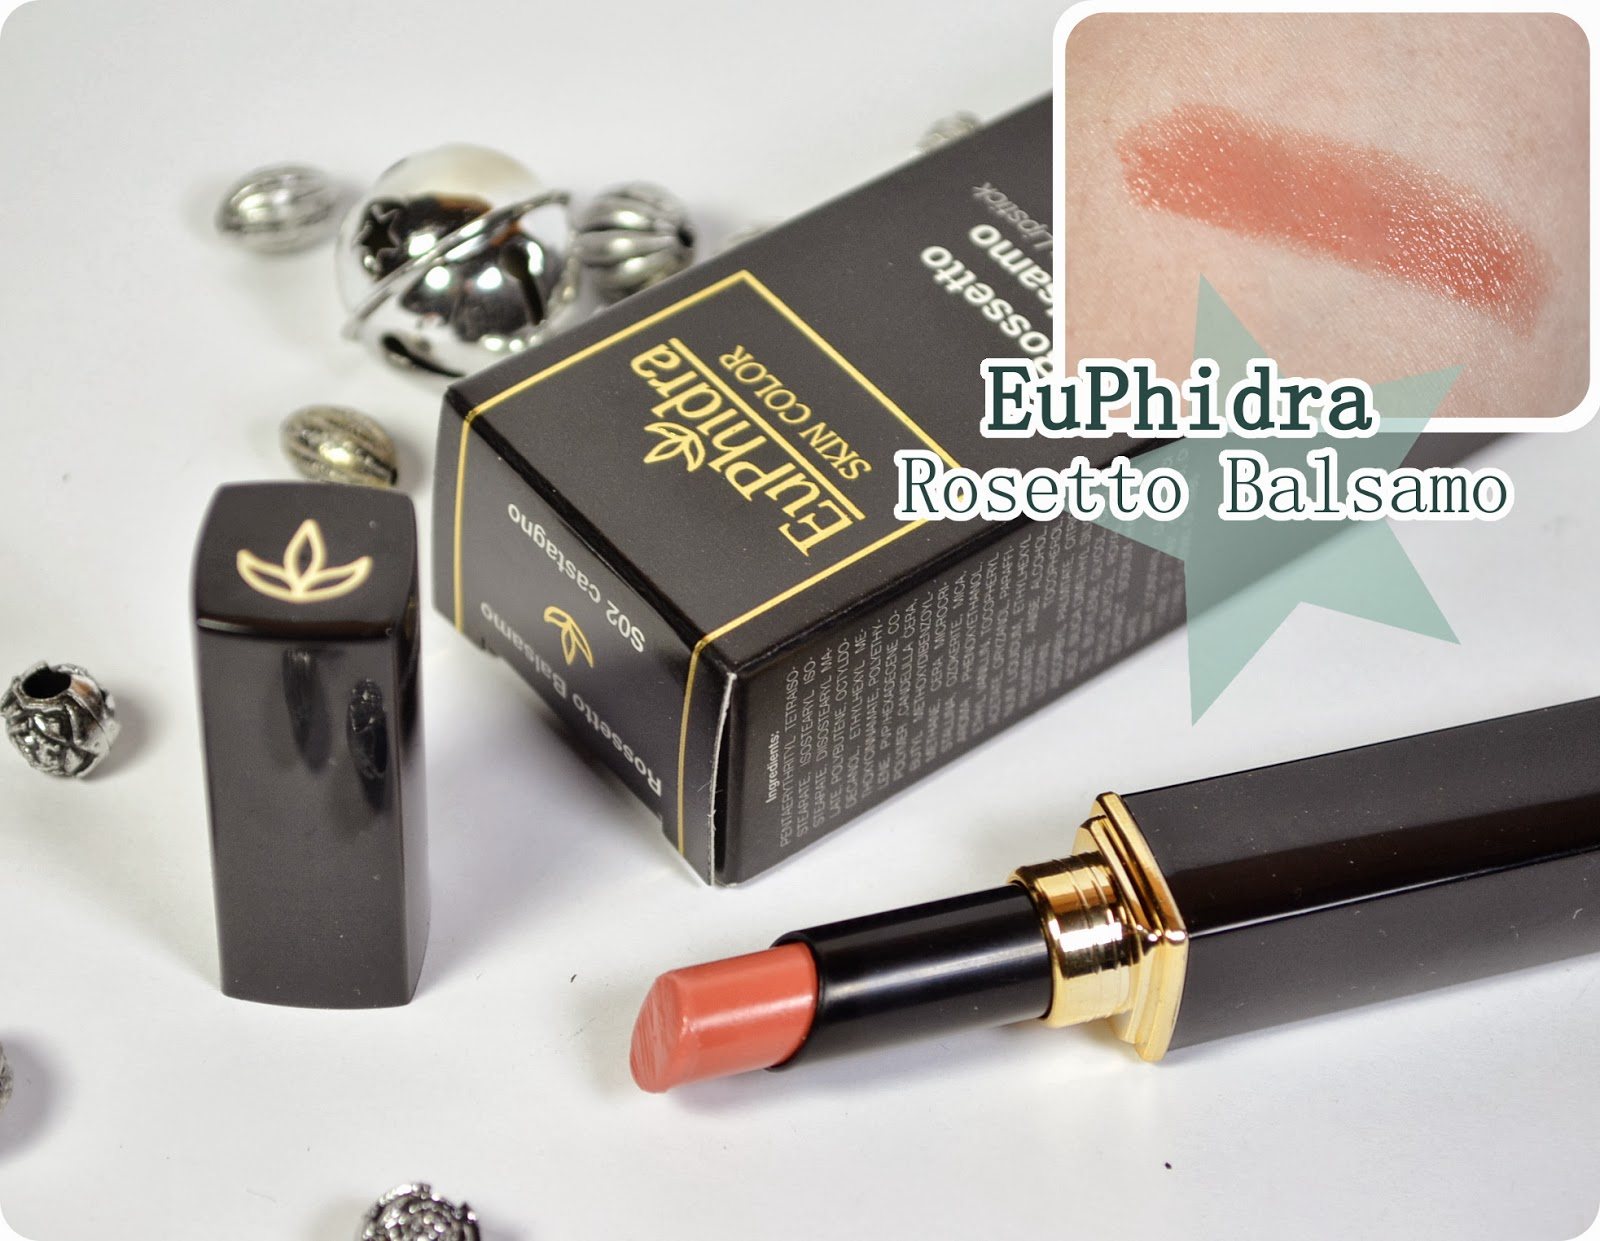 Glossybox Golden Box 2013 EuPhidra Conditioning Lipstick